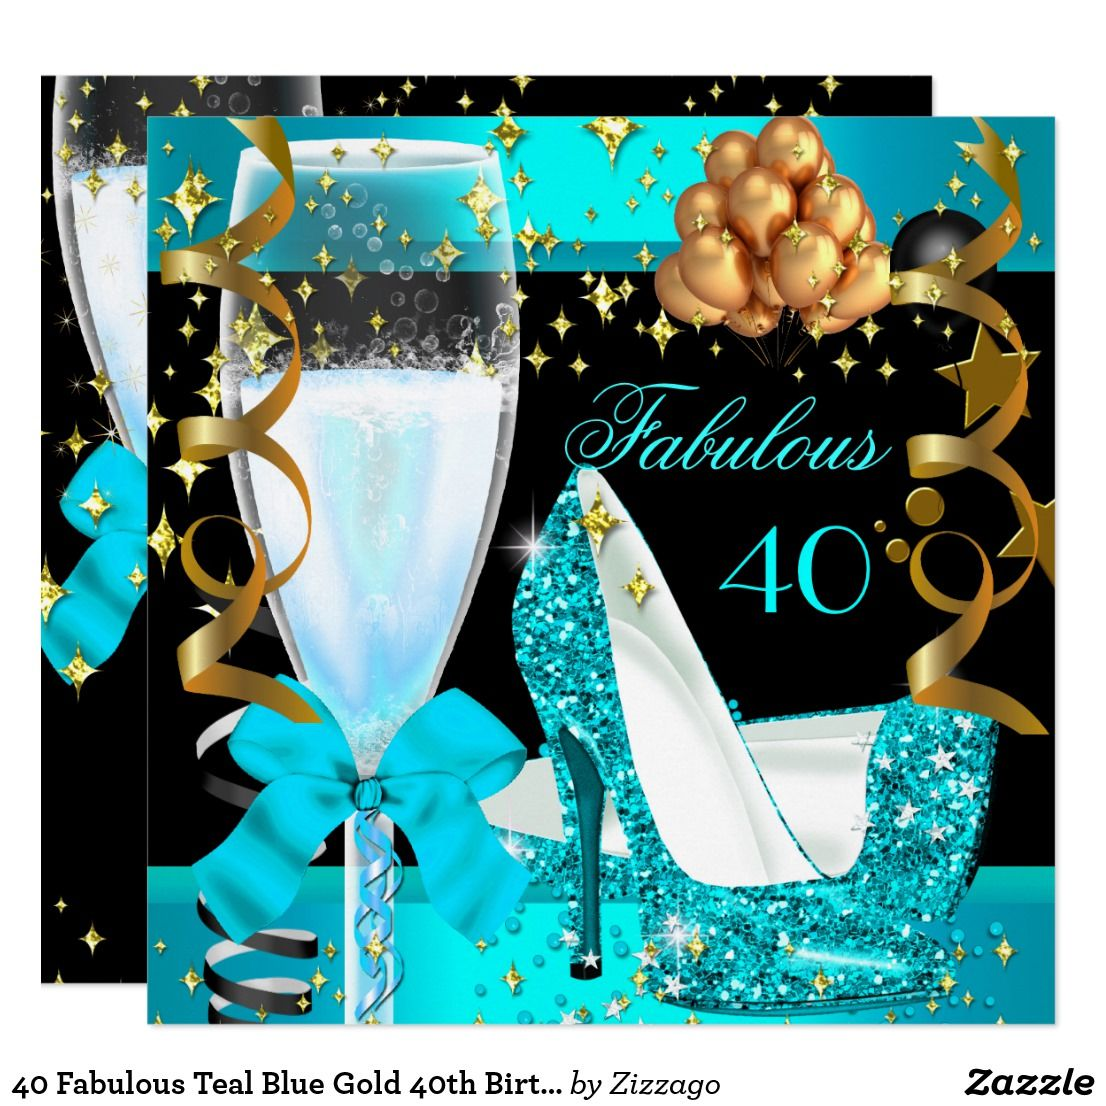 40 Fabulous Teal Blue Gold 40th Birthday Party 3 Invitation | Zazzle.com images